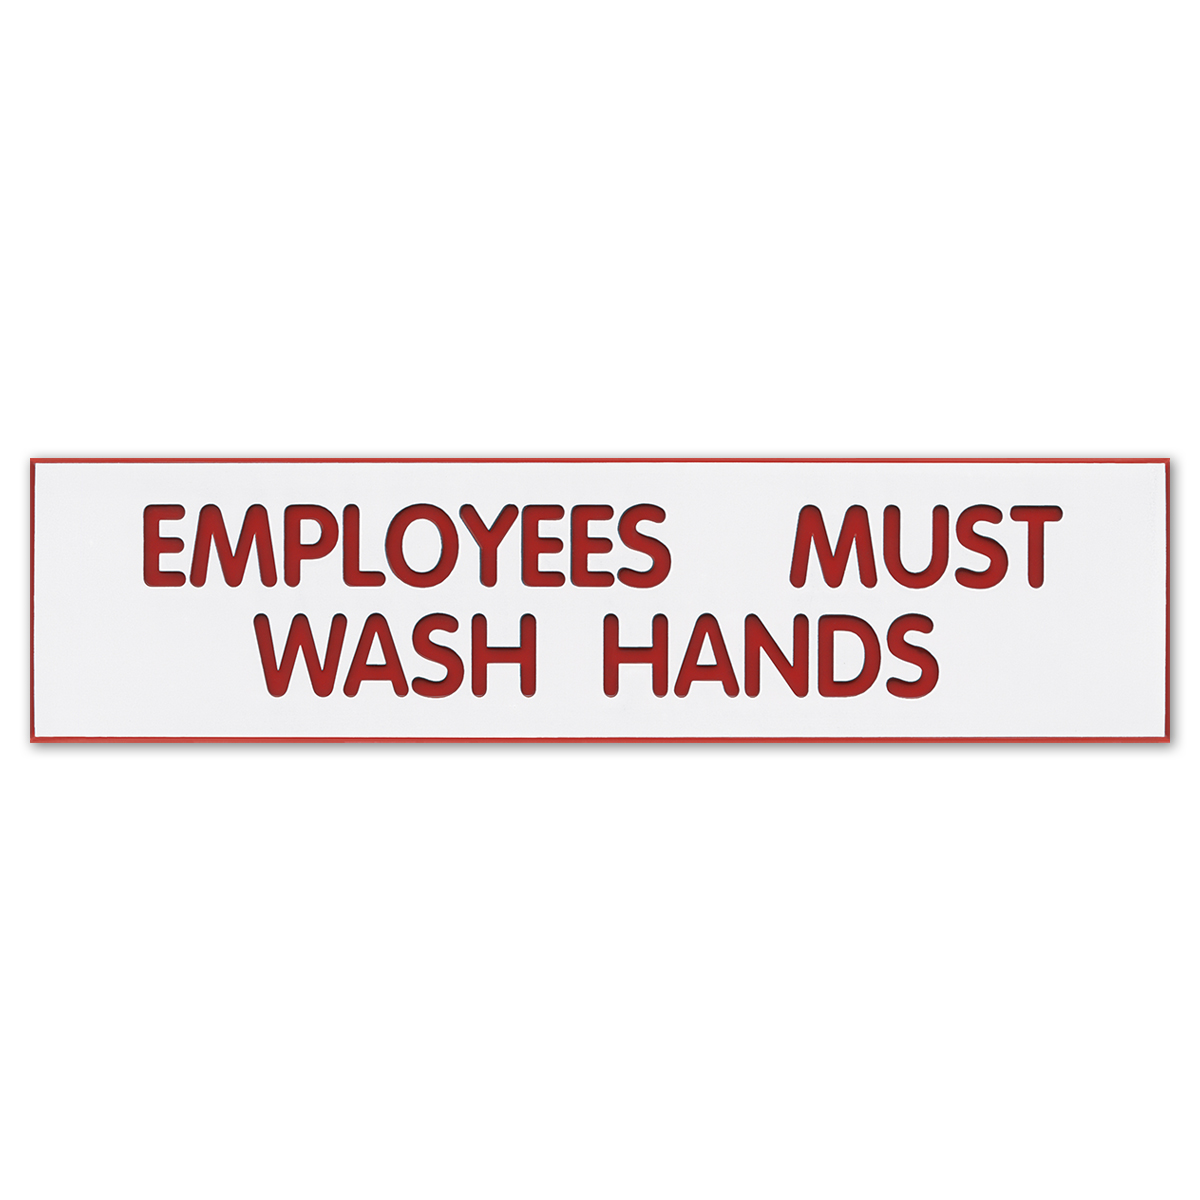 EMPLOYEES MUST WASH HANDS - Plastic Sign - 098002